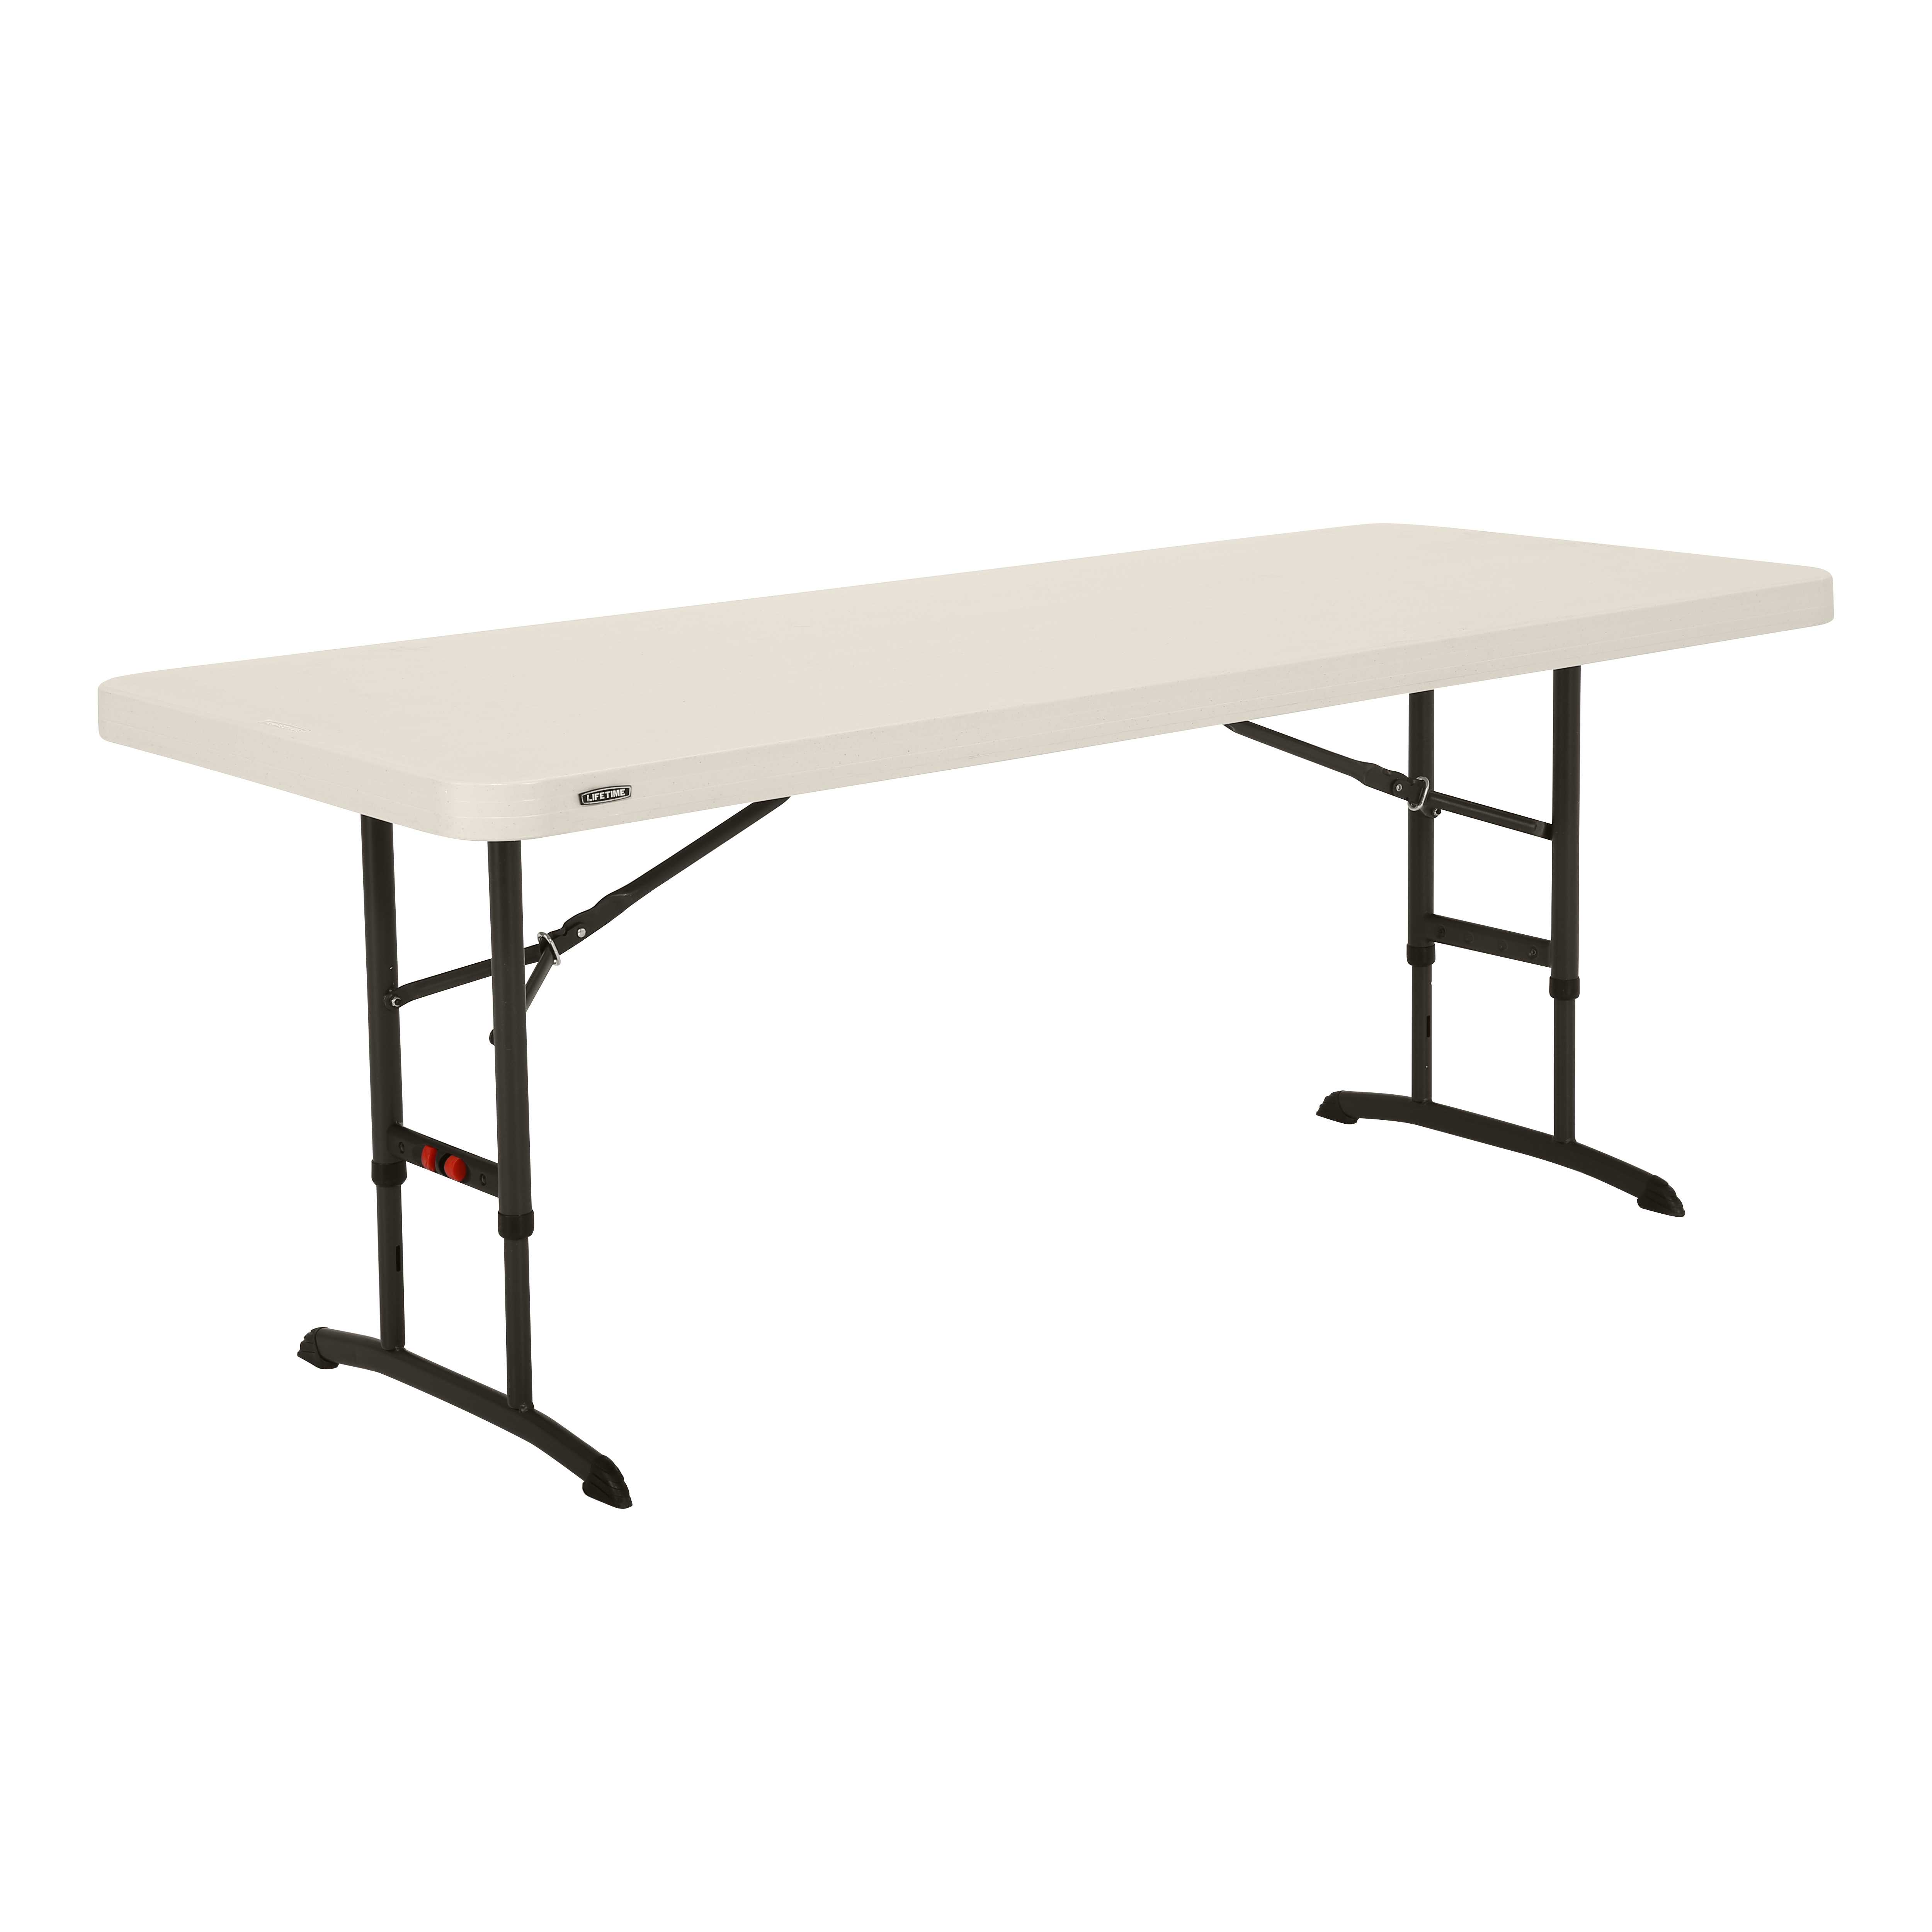 Table pliante ajustable rectangulaire 183cm / 8 personnes